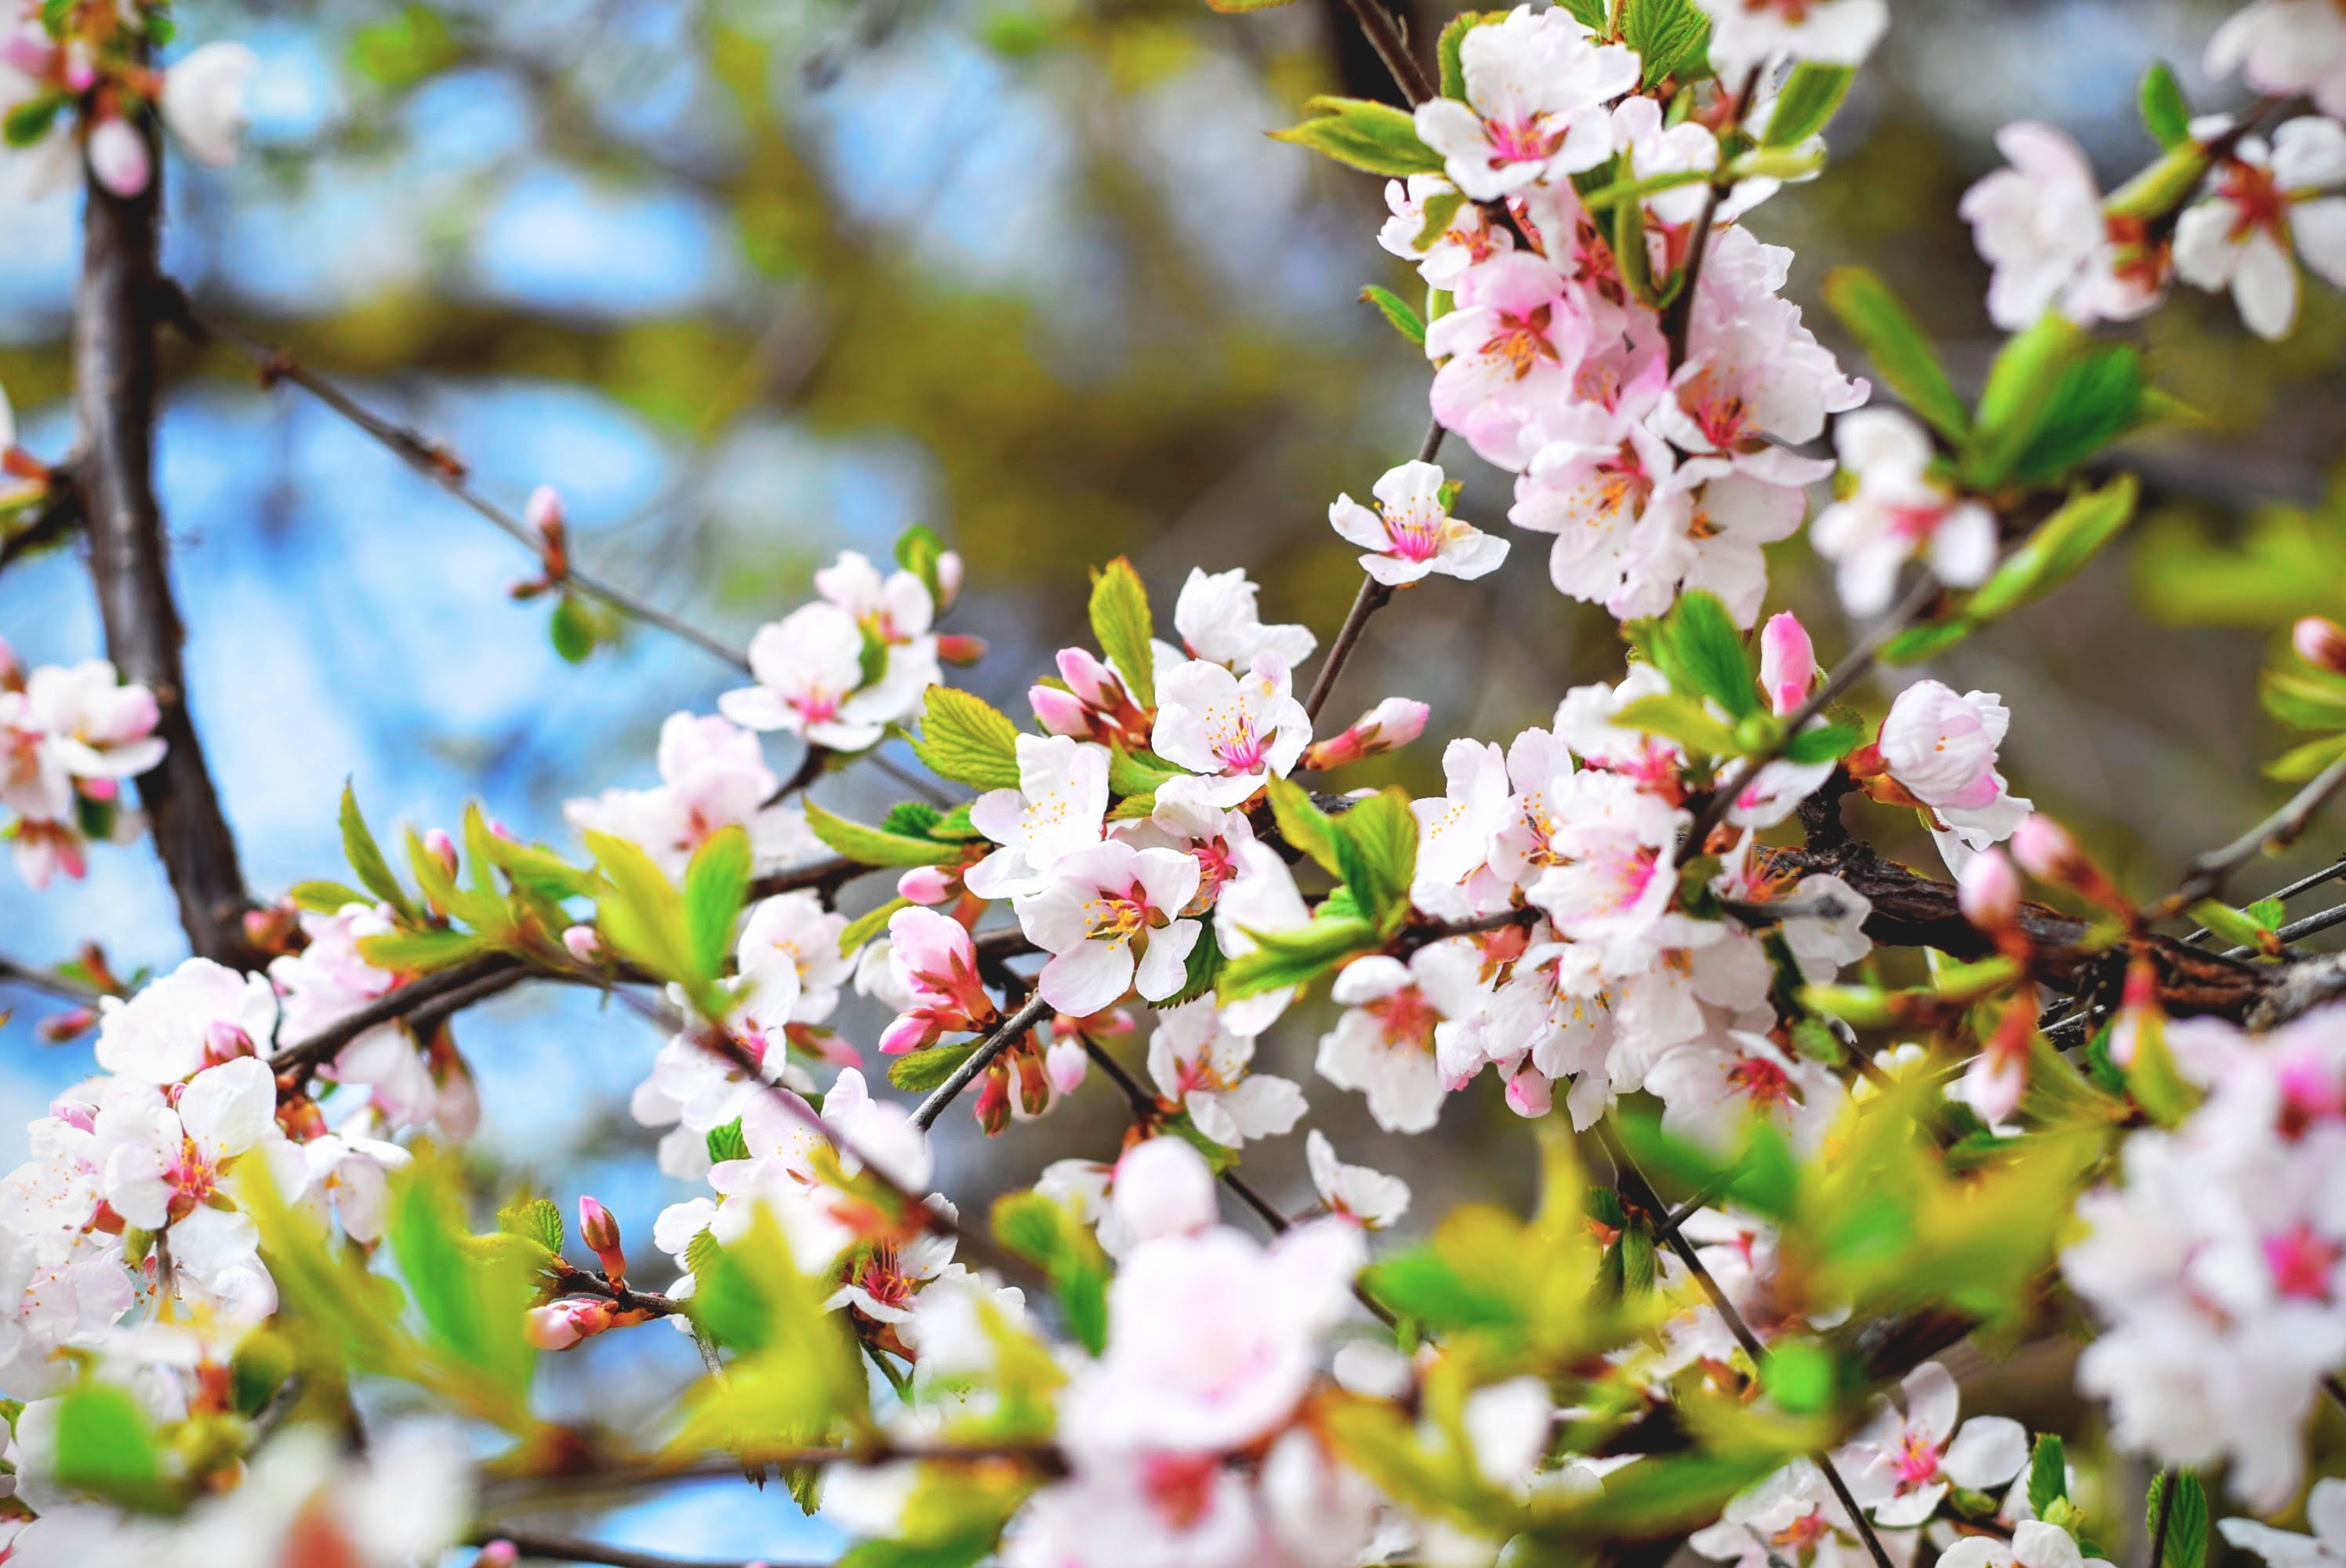 Pink blossom on leafy tree branches and foliage with blue sky in Spring